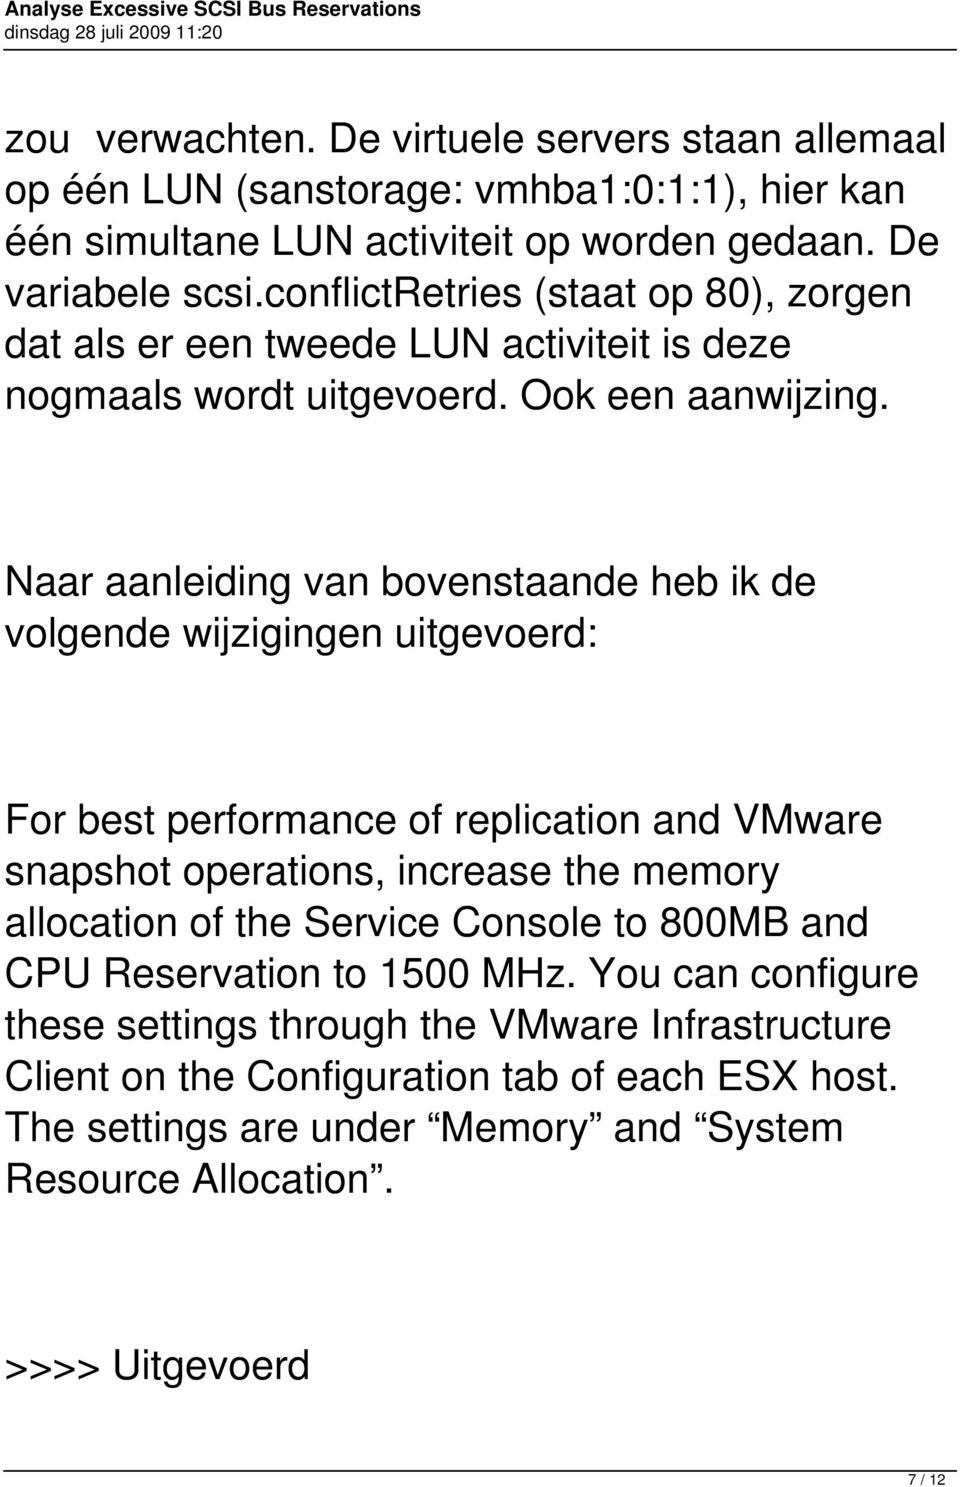 Naar aanleiding van bovenstaande heb ik de volgende wijzigingen uitgevoerd: For best performance of replication and VMware snapshot operations, increase the memory allocation of the